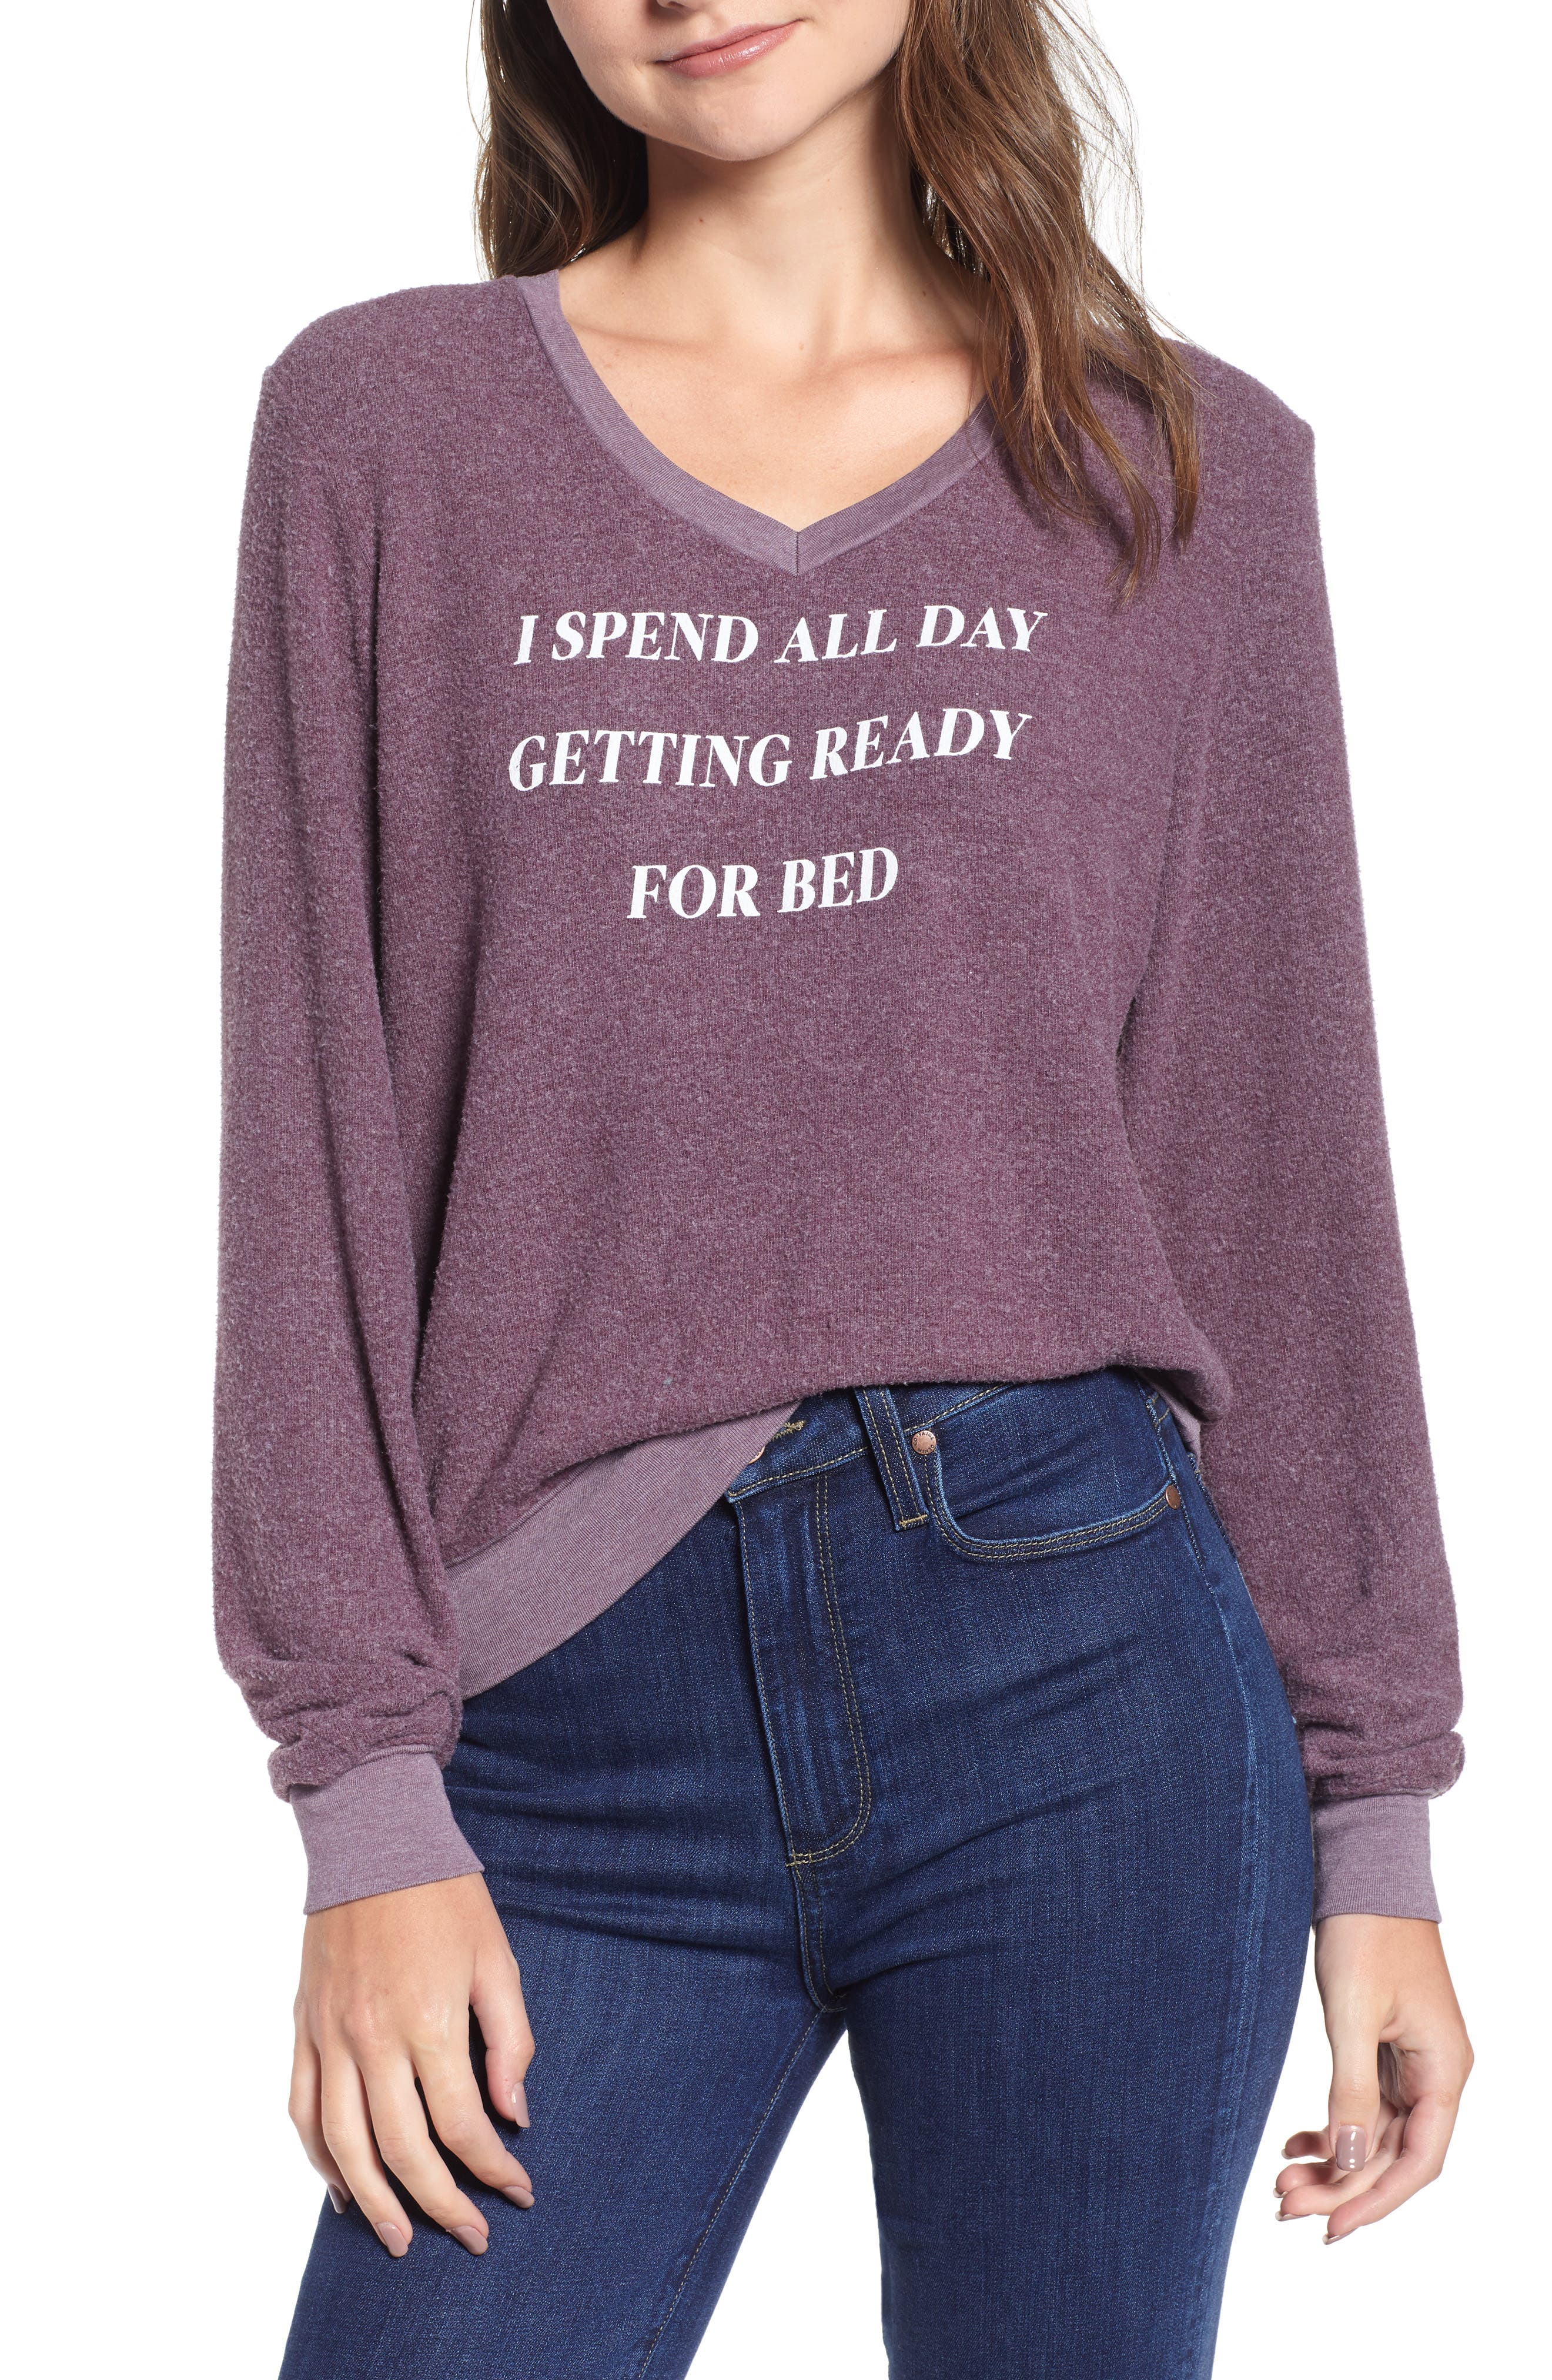 Ready For Bed Baggy Beach Jumper Sweatshirt,                         Main,                         color, CRUSHED BERRY